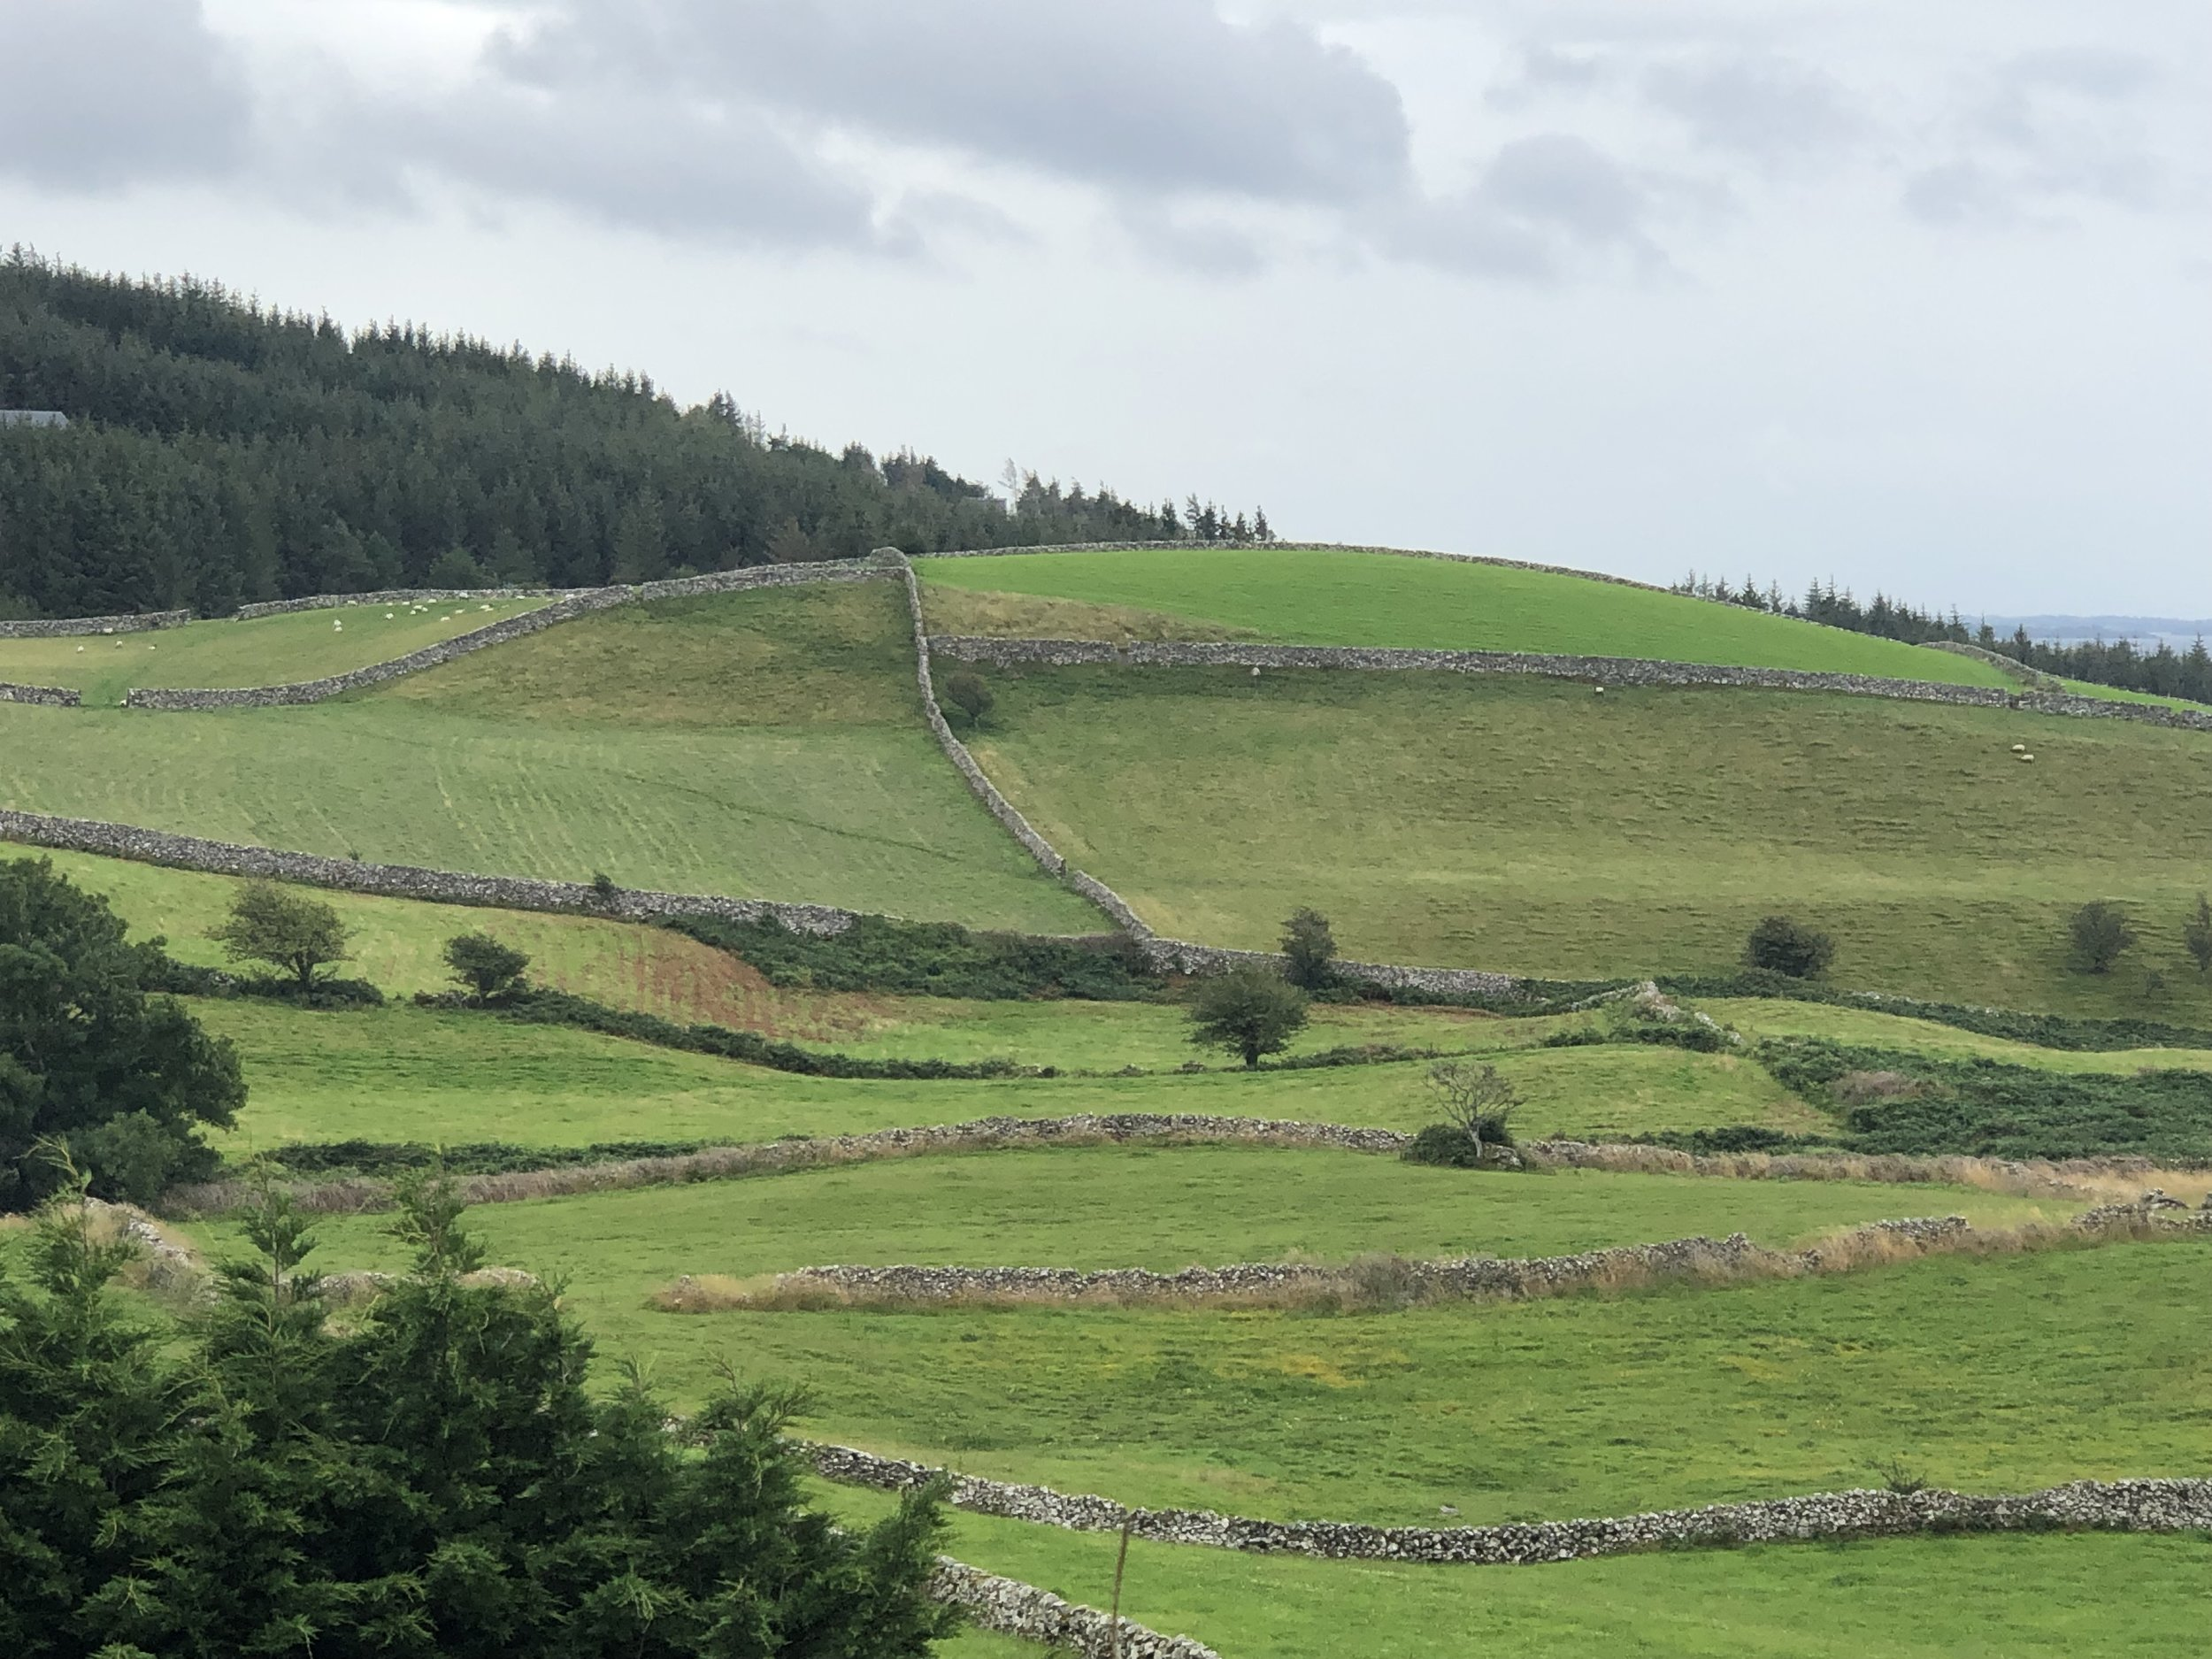 I was totally blown away by the stone fences that saw throughout Ireland. These industrious people cleared the land of boulders and used the stones to build fences like the ones in this picture. It is mind boggling to consider how much labor was invested to do this work..